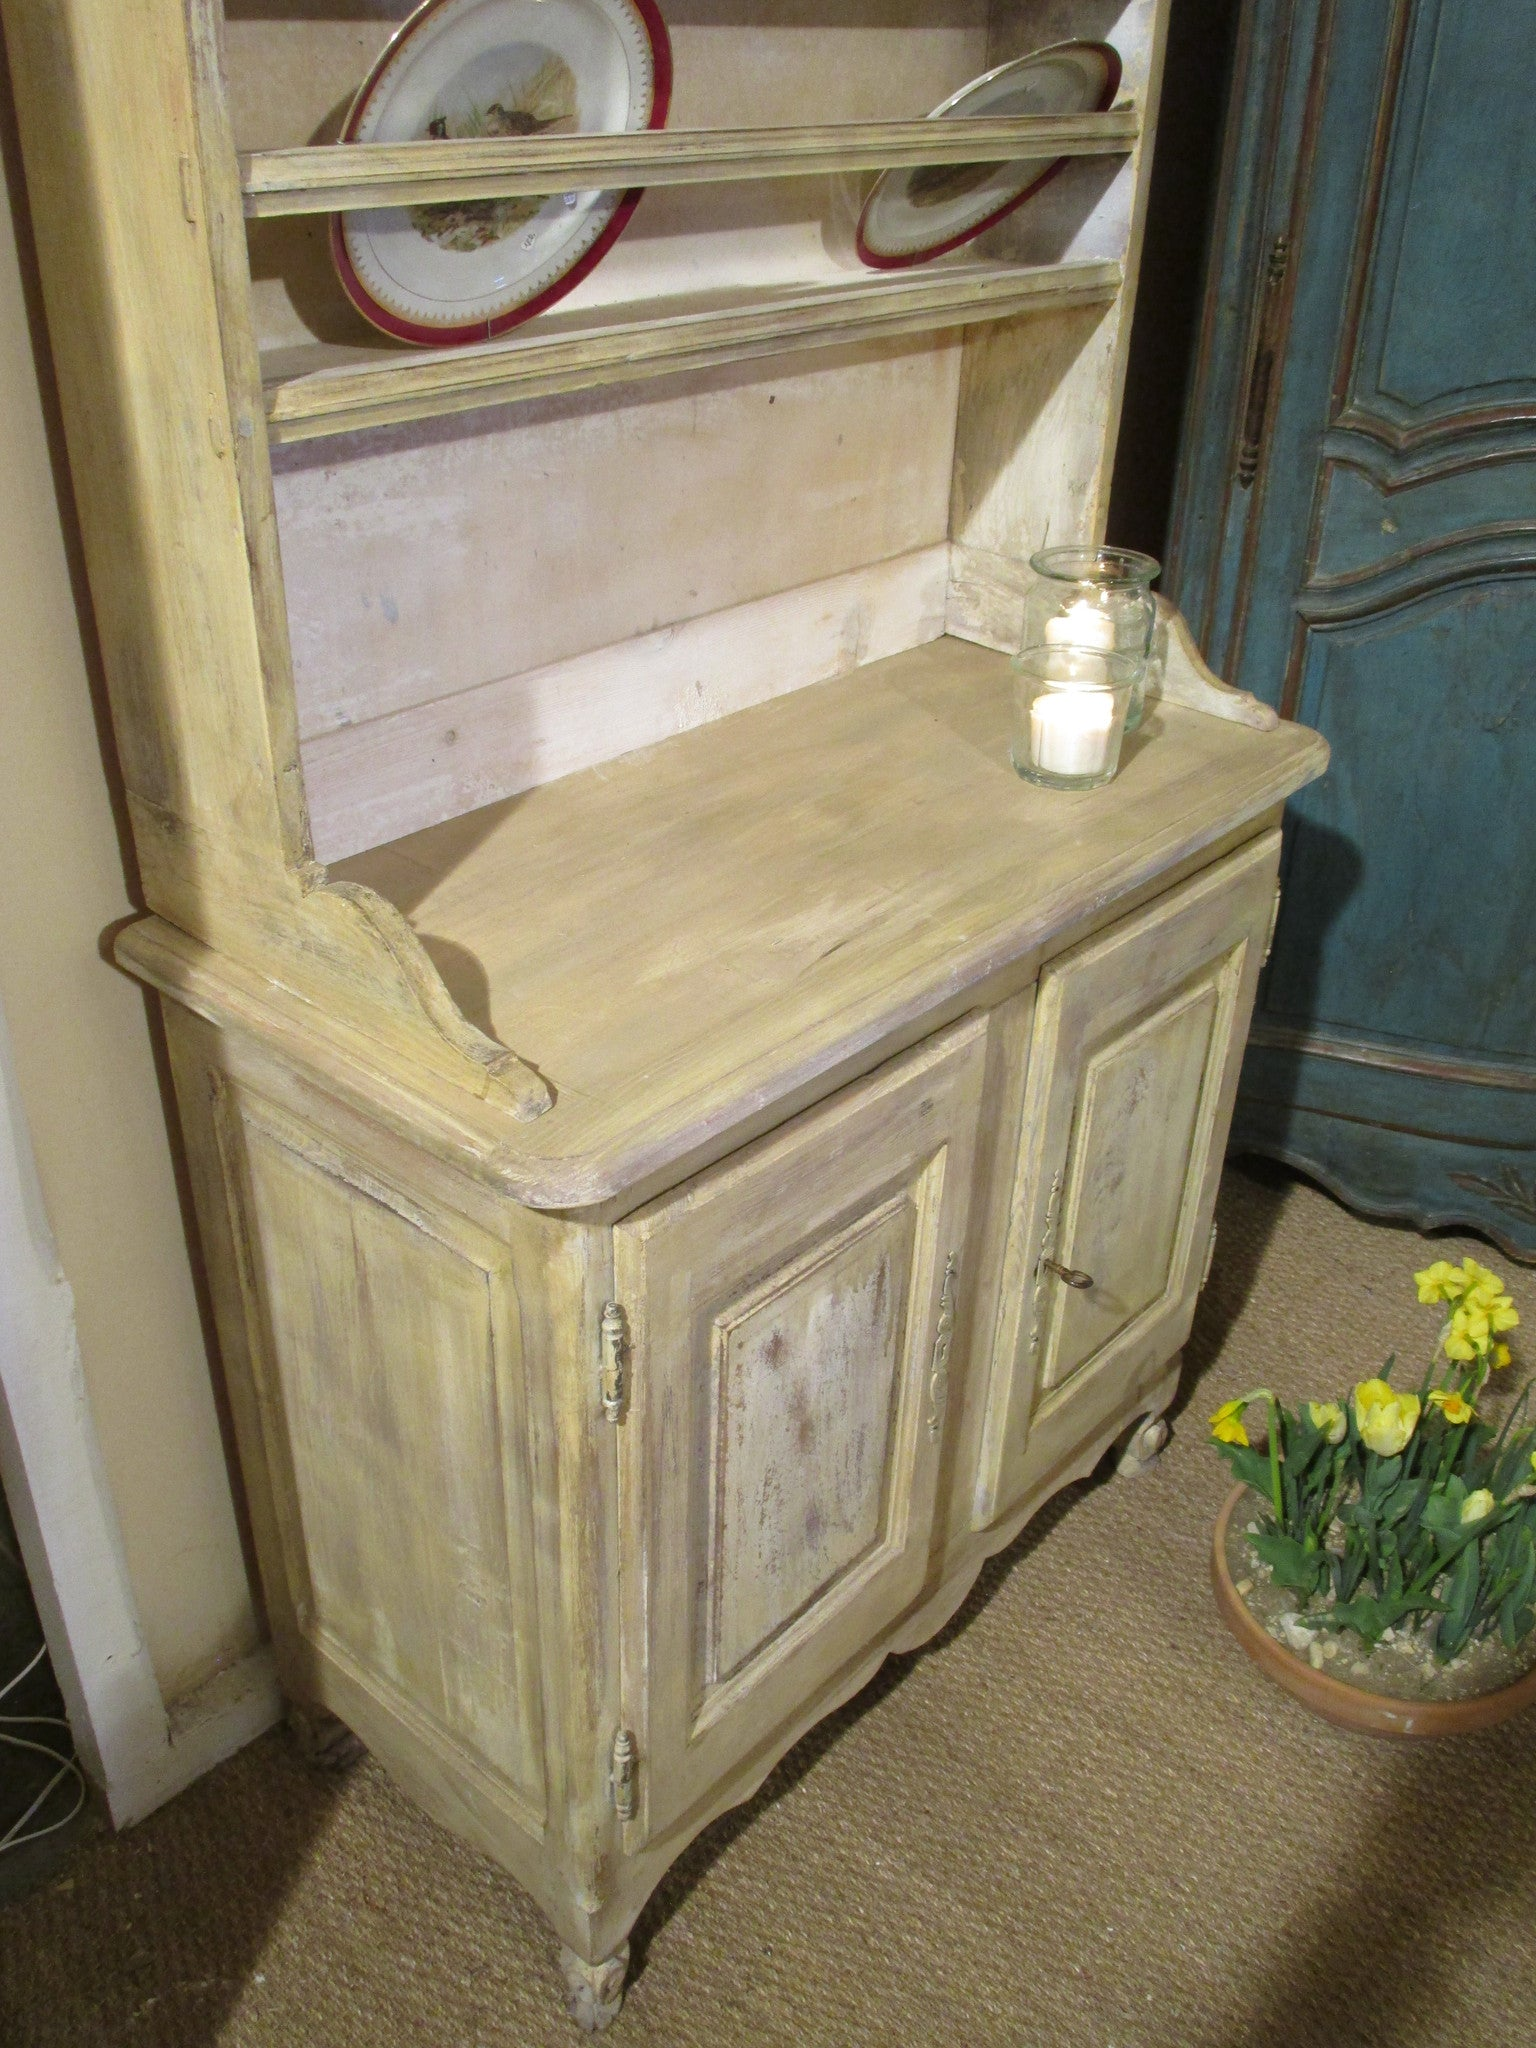 19th century kitchen dresser